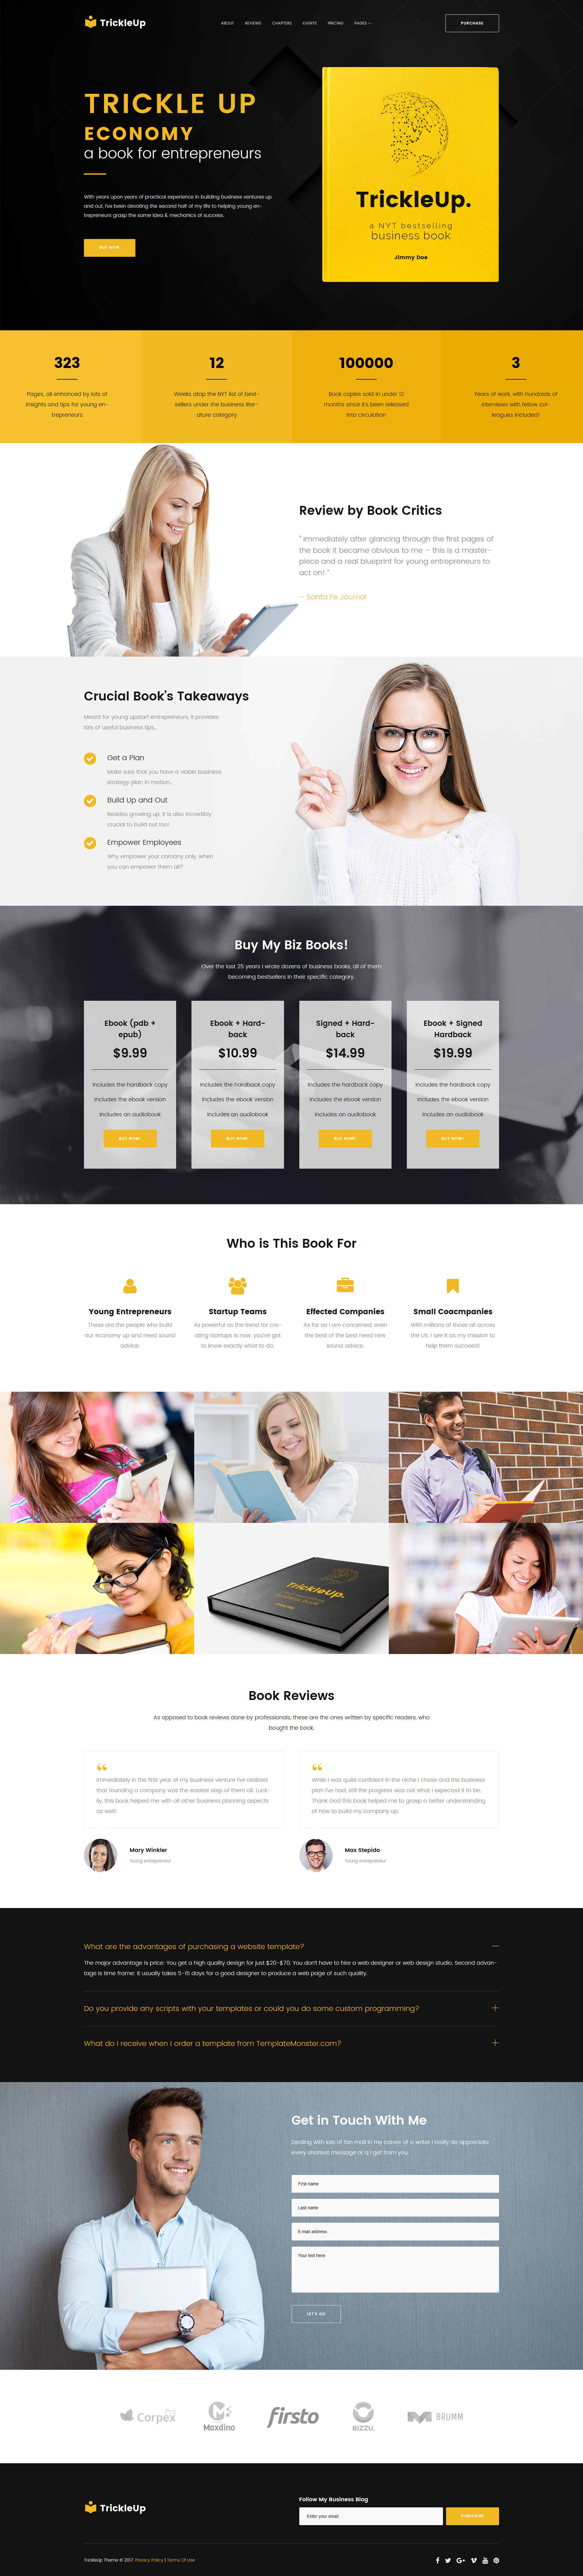 One Page E-book Landing WordPress Theme